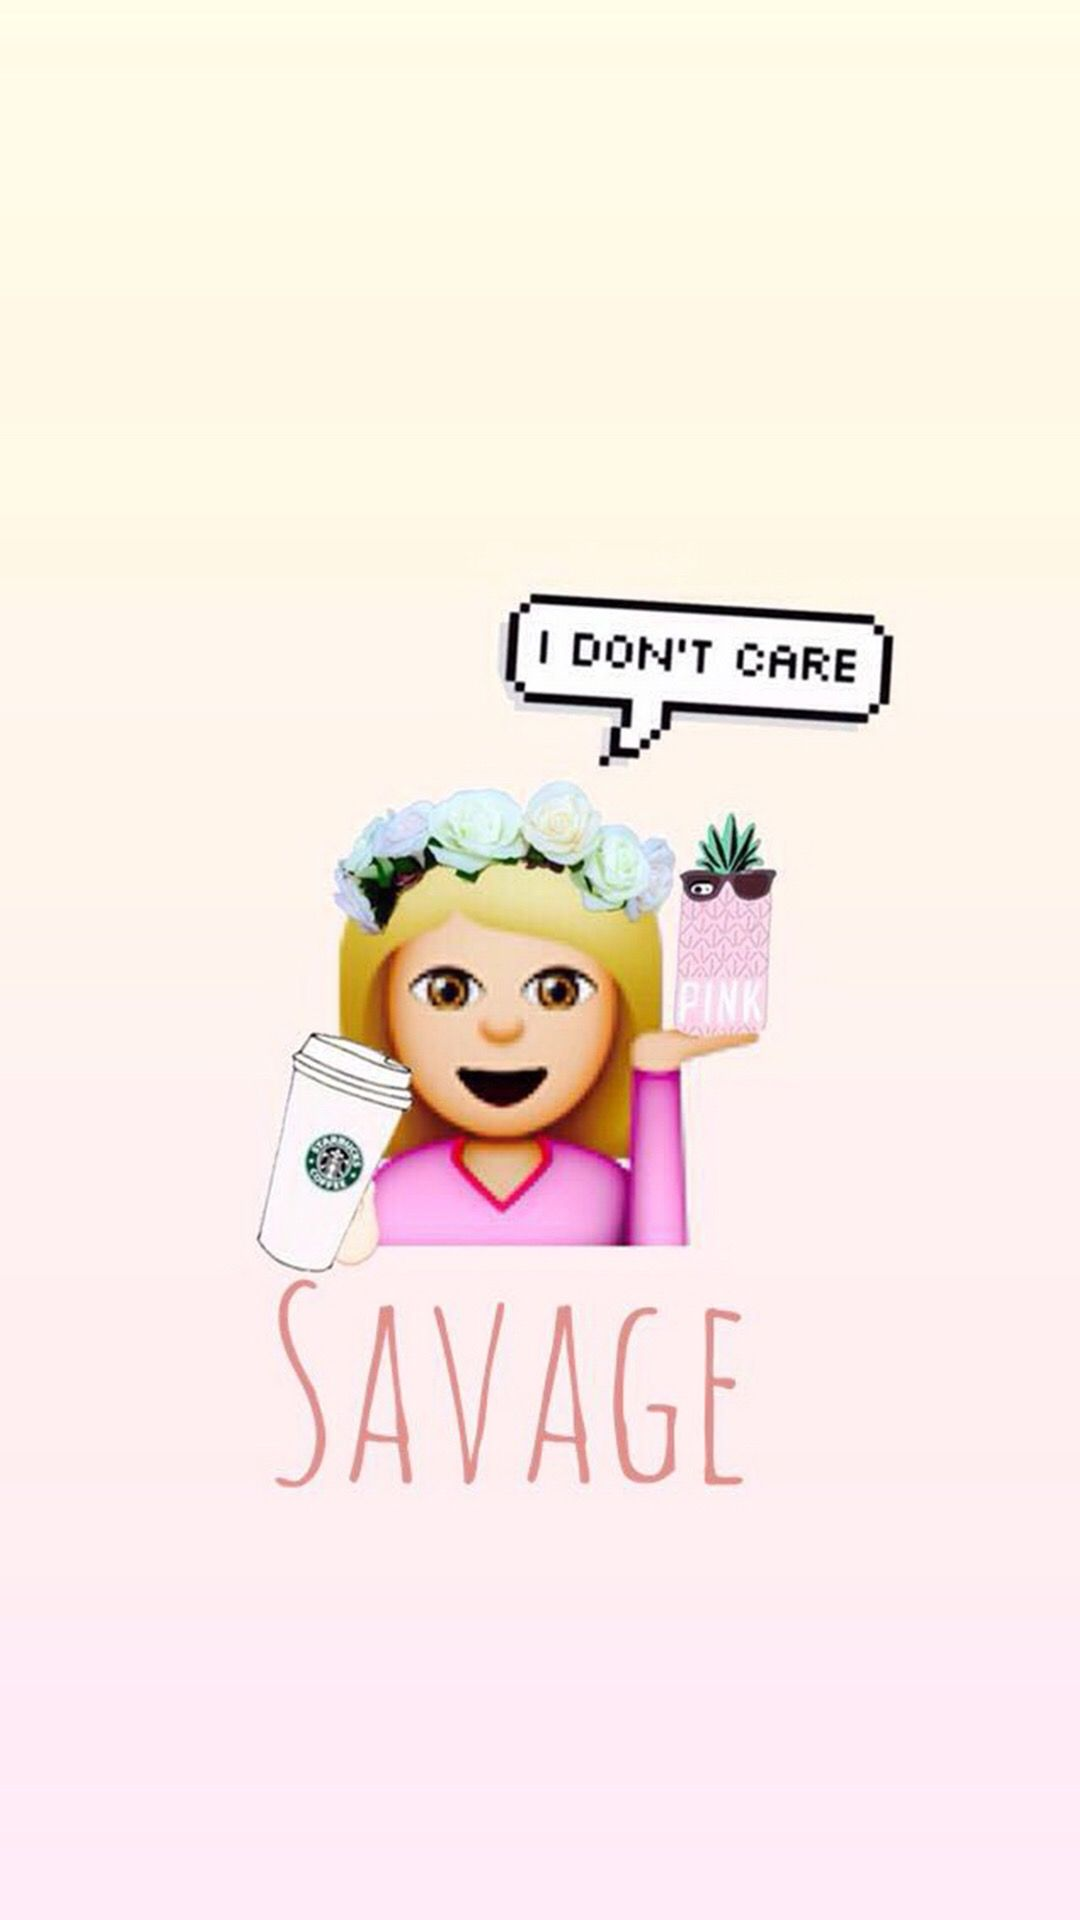 Savage wallpaper Savage wallpapers, Emoji wallpaper